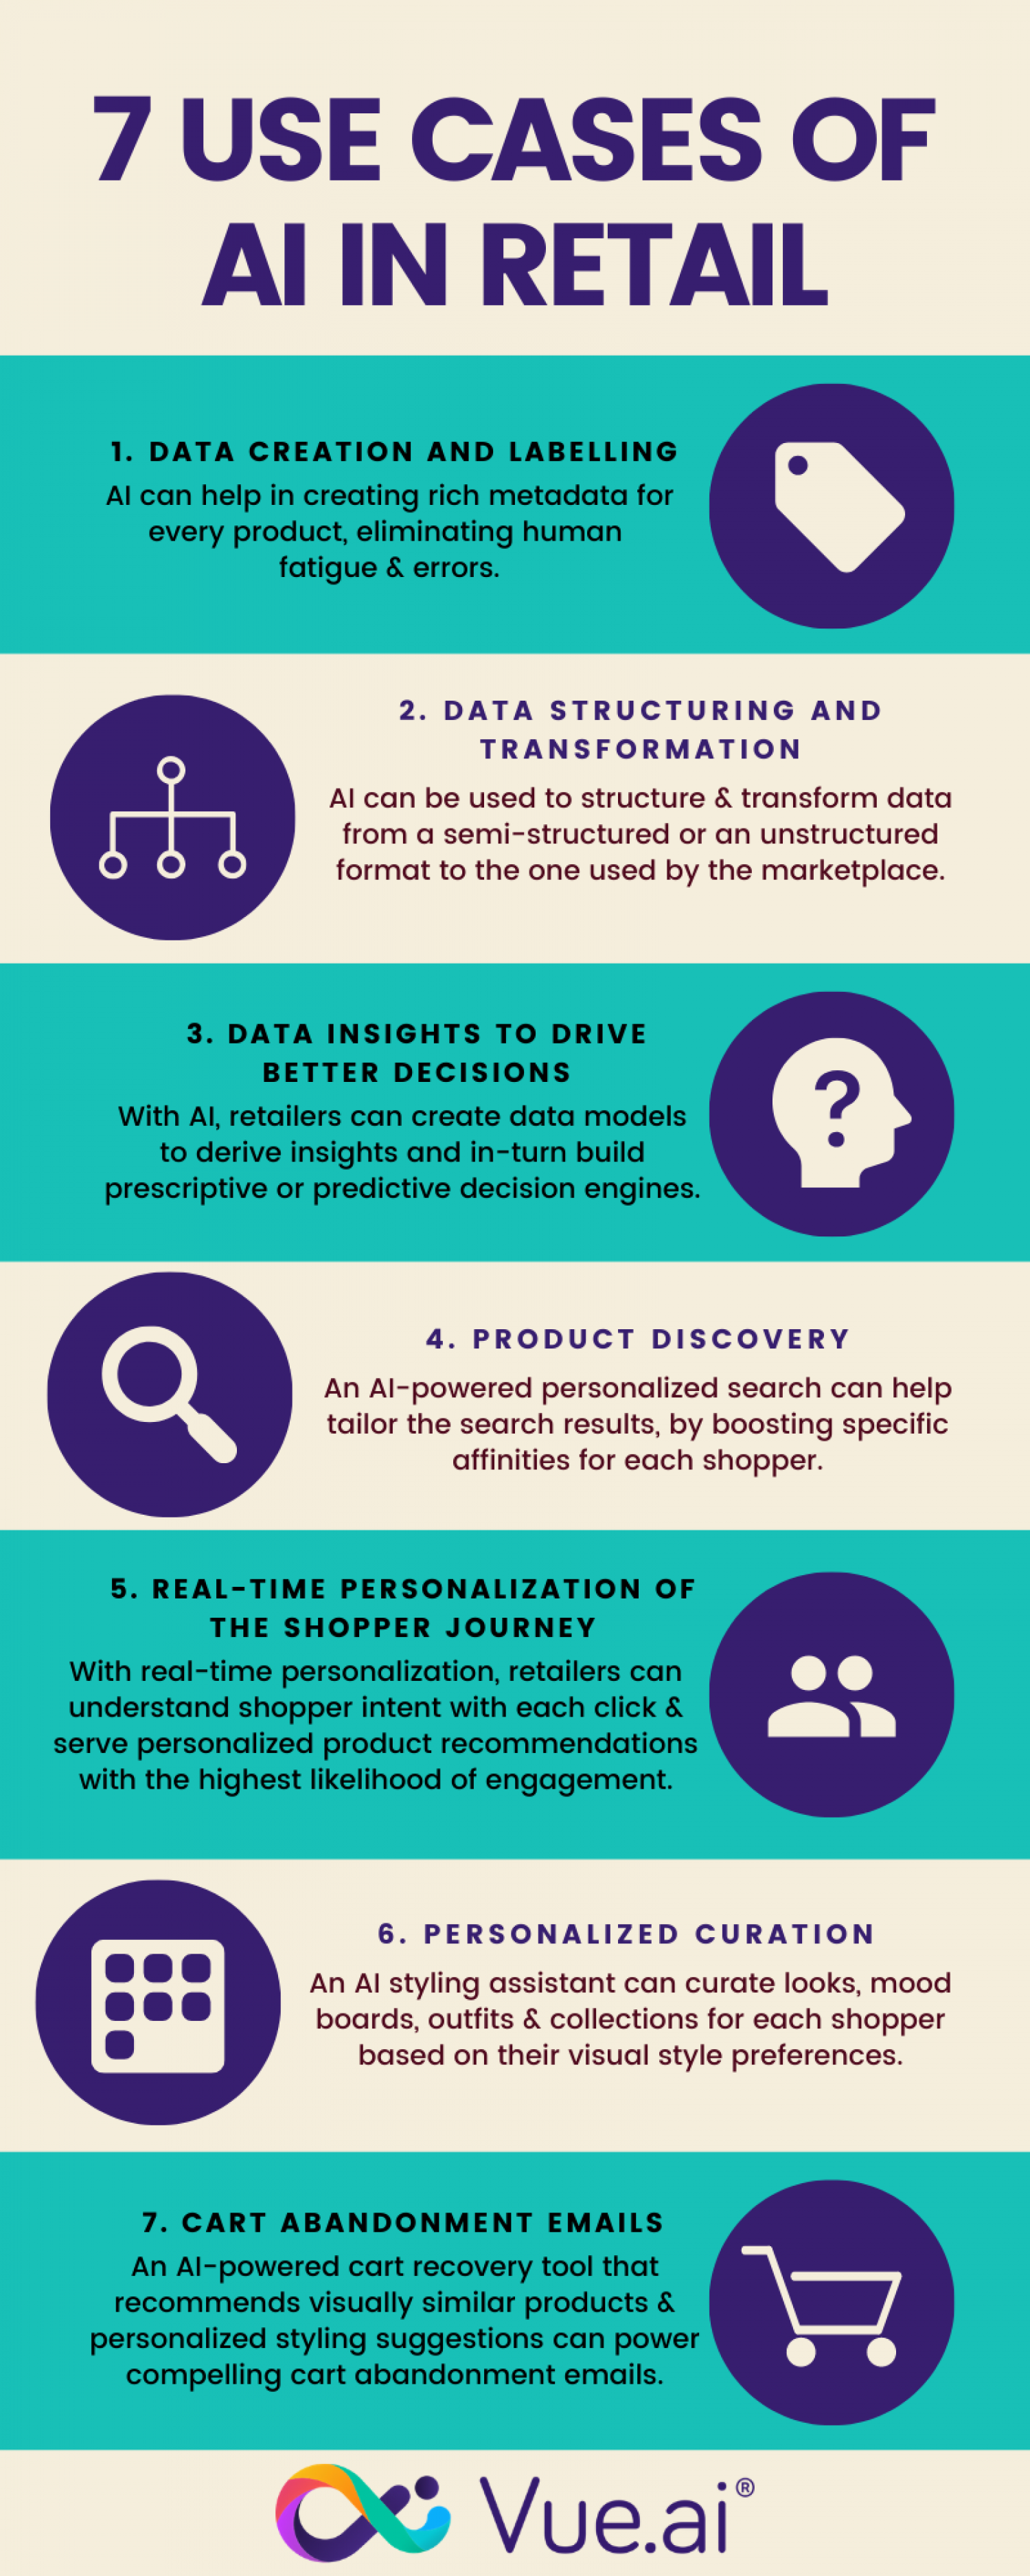 7 Use Cases of AI in Retail 2020 Infographic